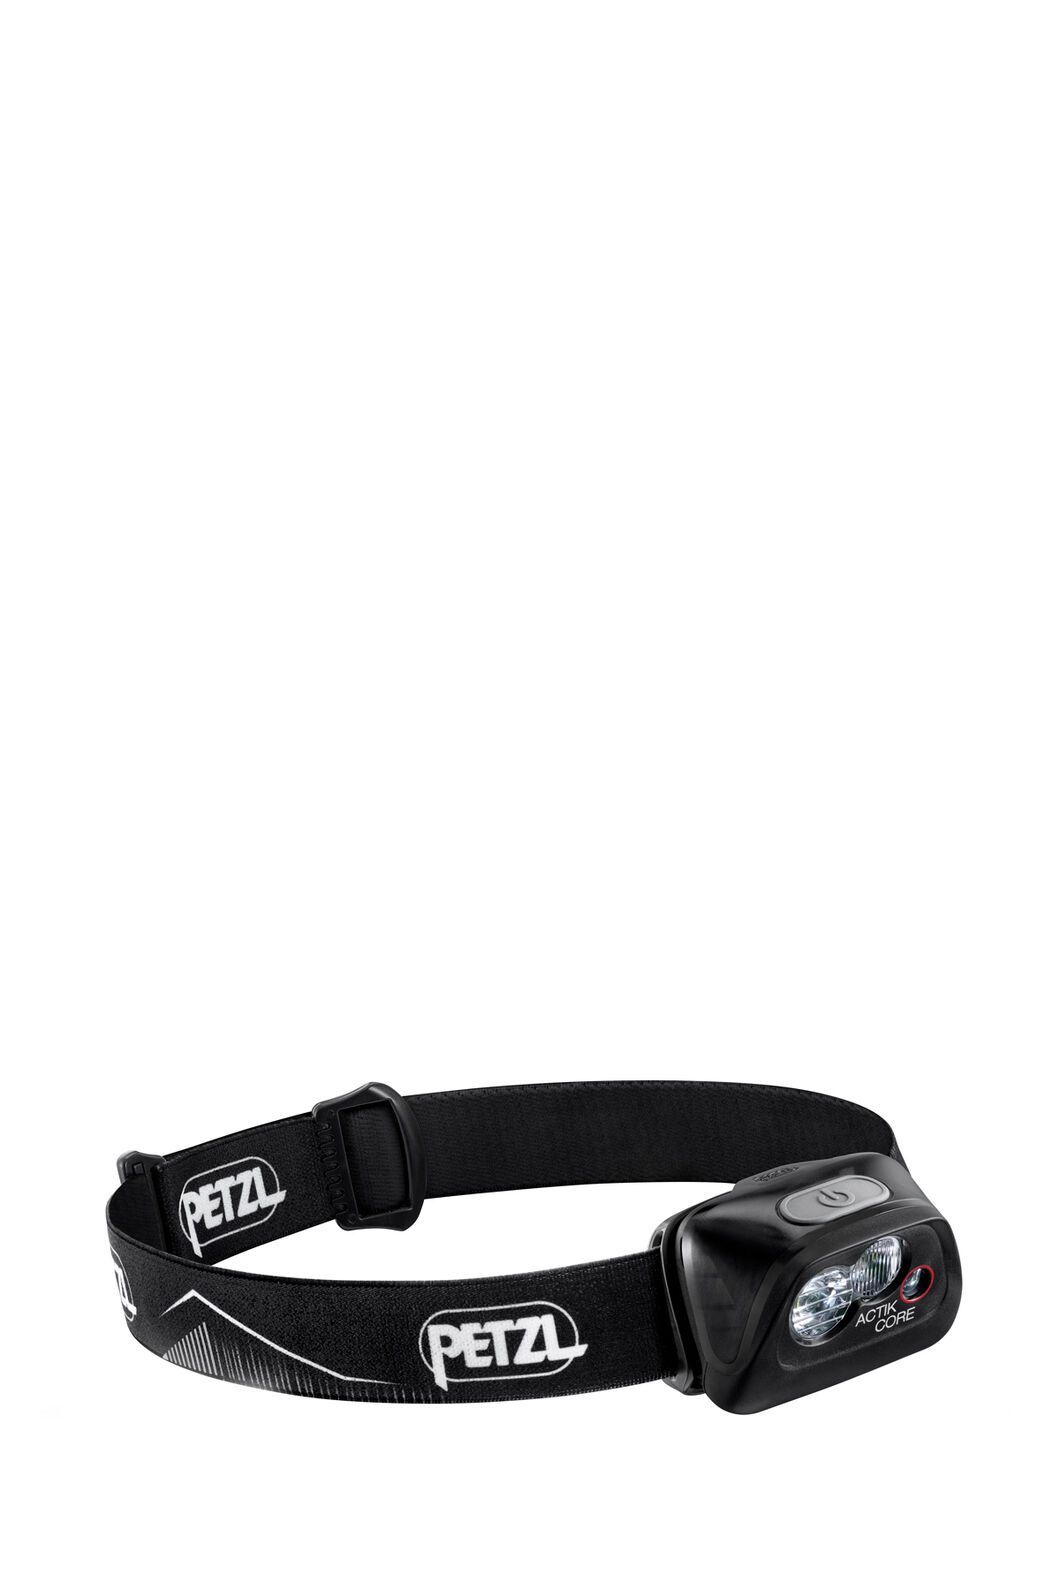 Petzl Actik Core Head Torch, Black, hi-res